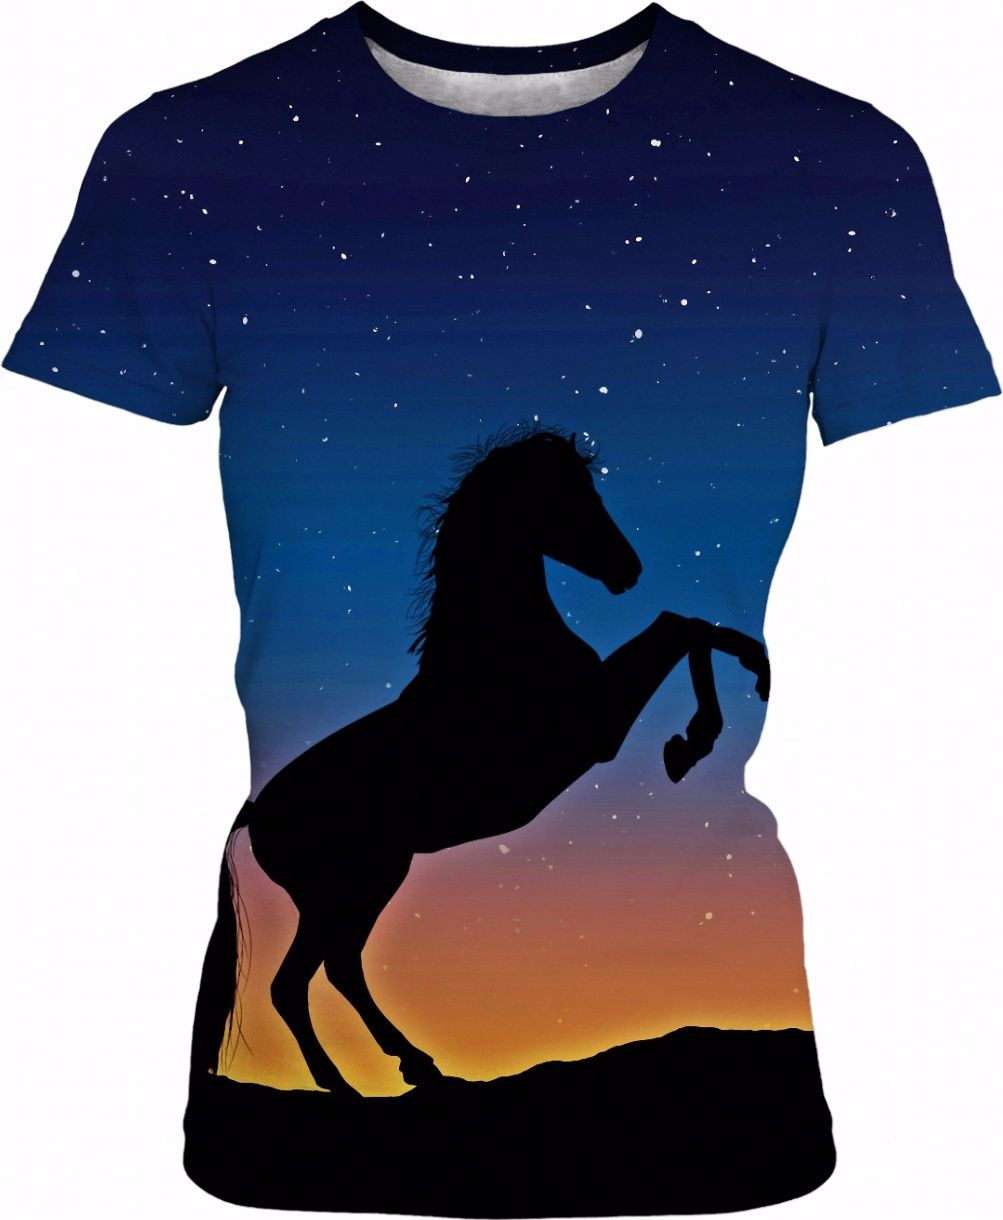 1003x1220 Rearing Horse Silhouette Against Stars I Silhouettes And Animal